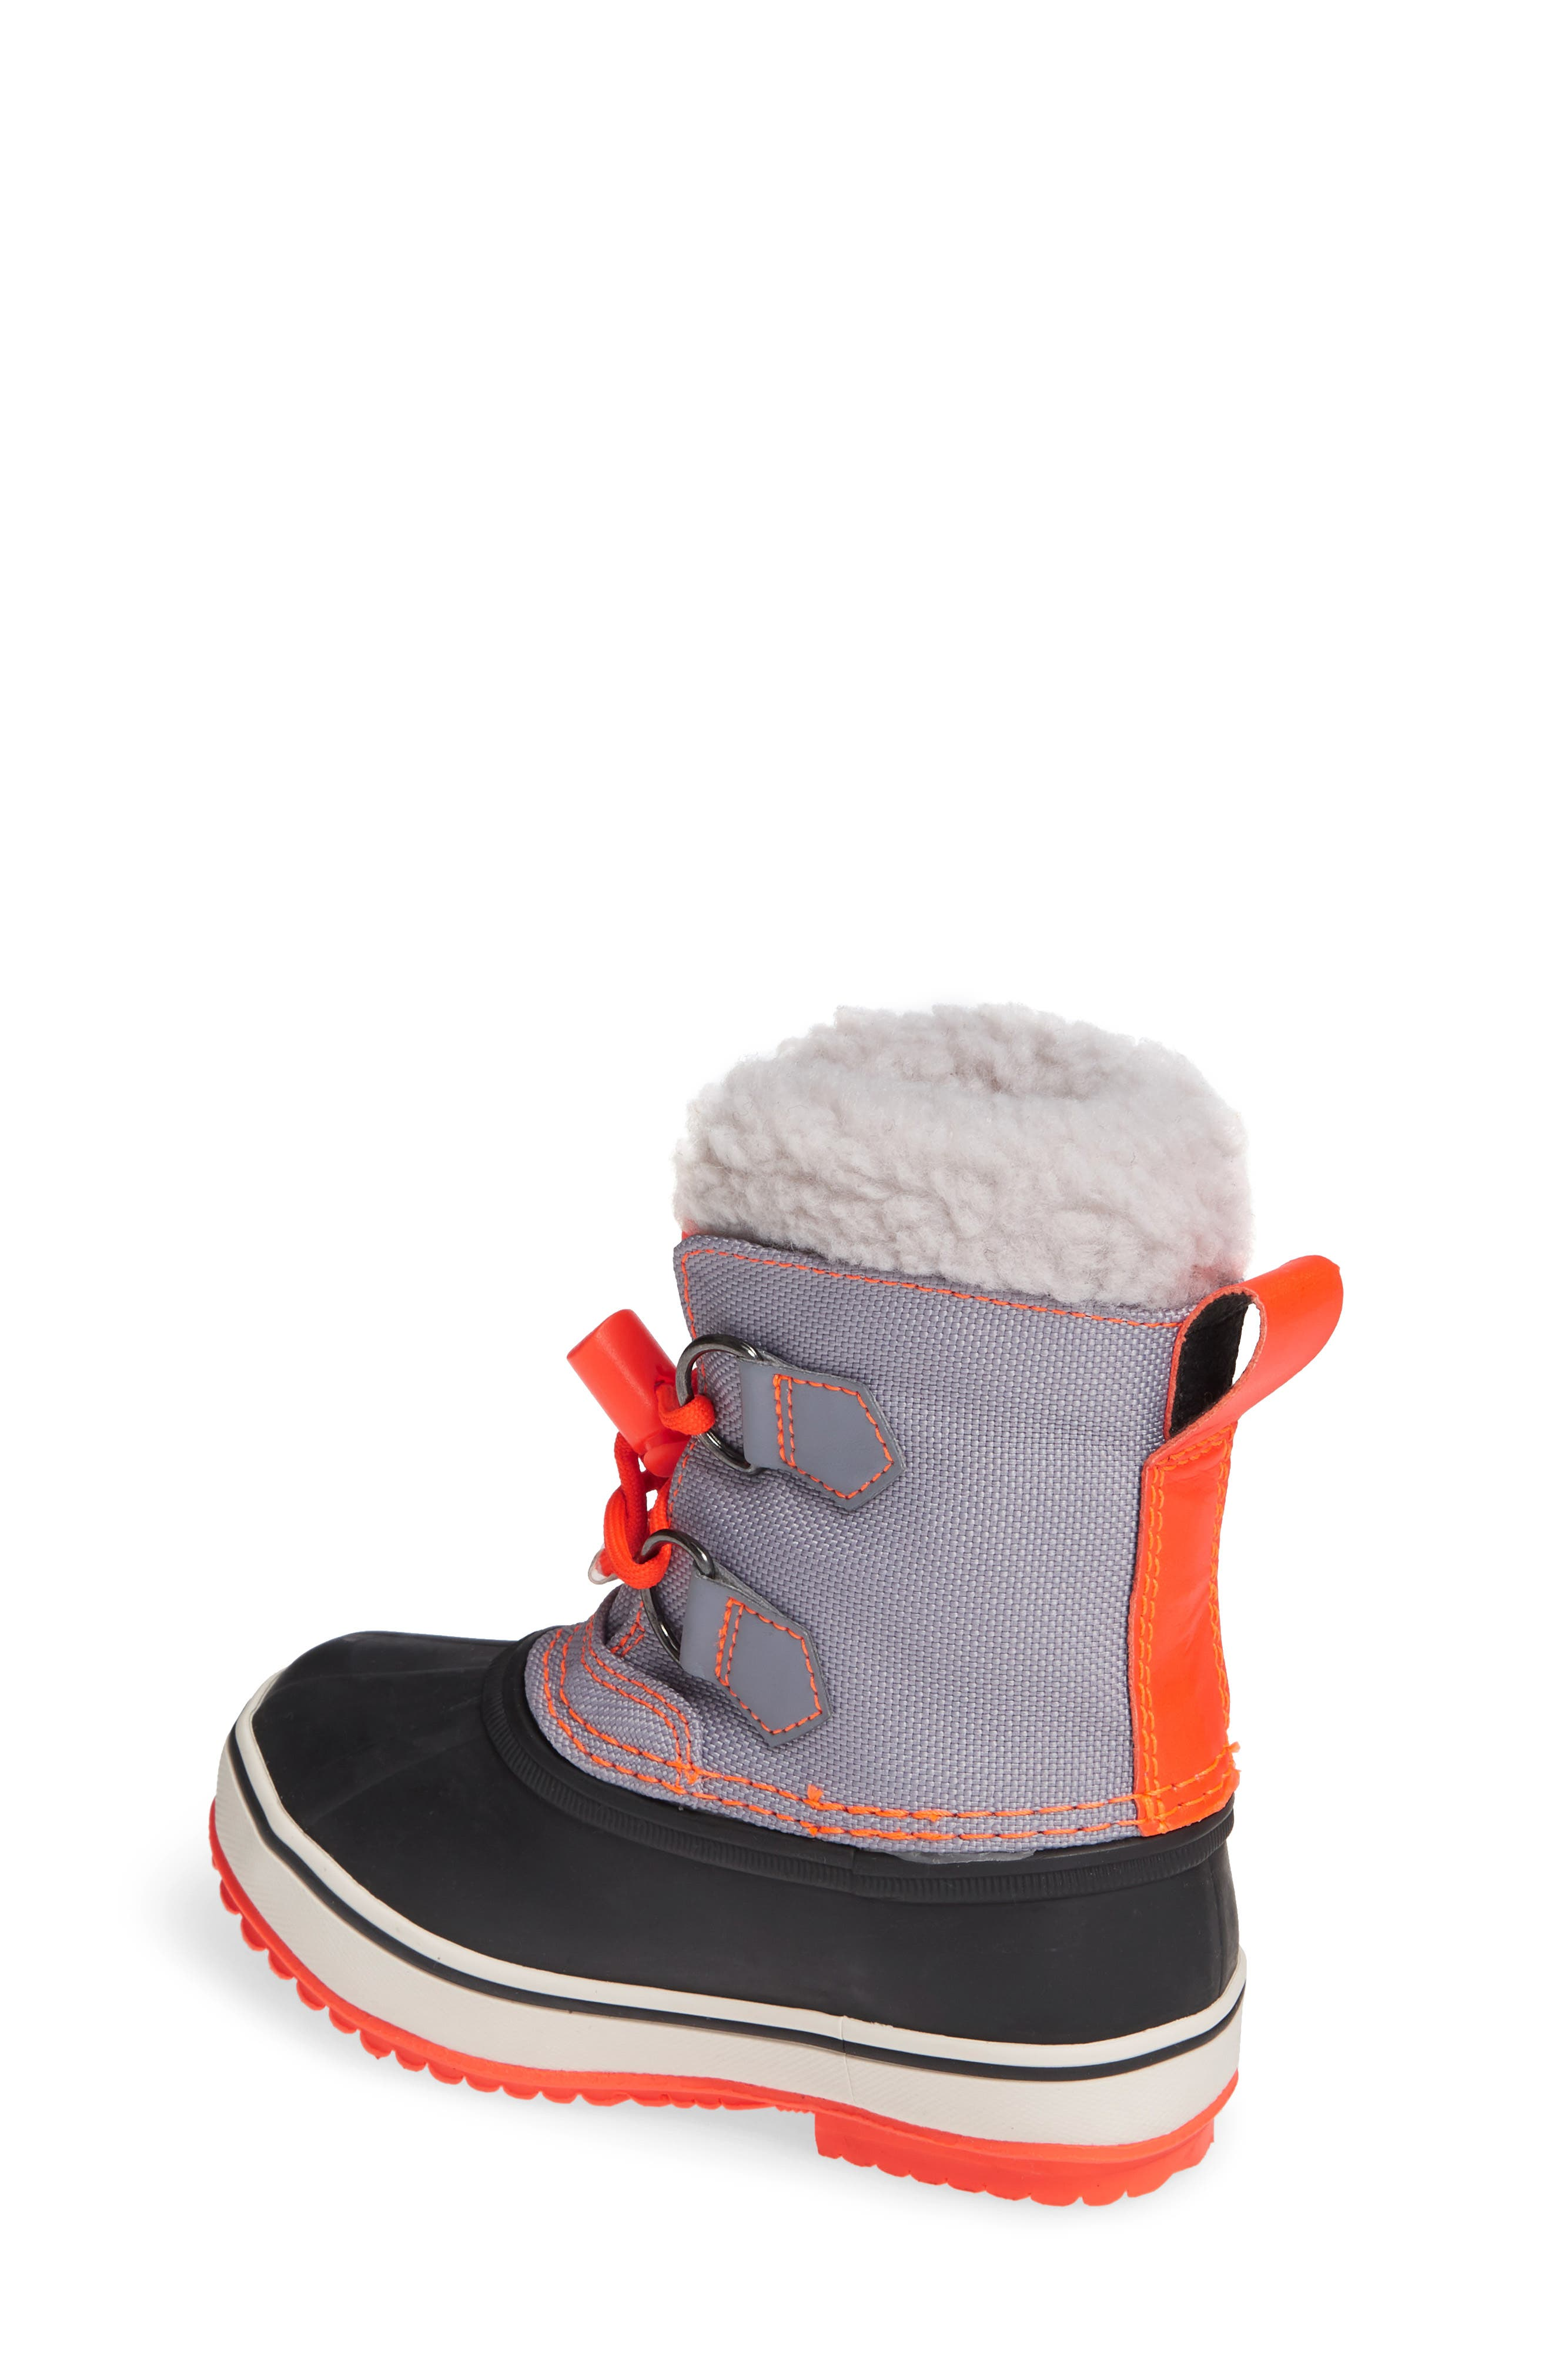 Waterproof Snow Boots,                             Alternate thumbnail 2, color,                             STARBOARD BLUE